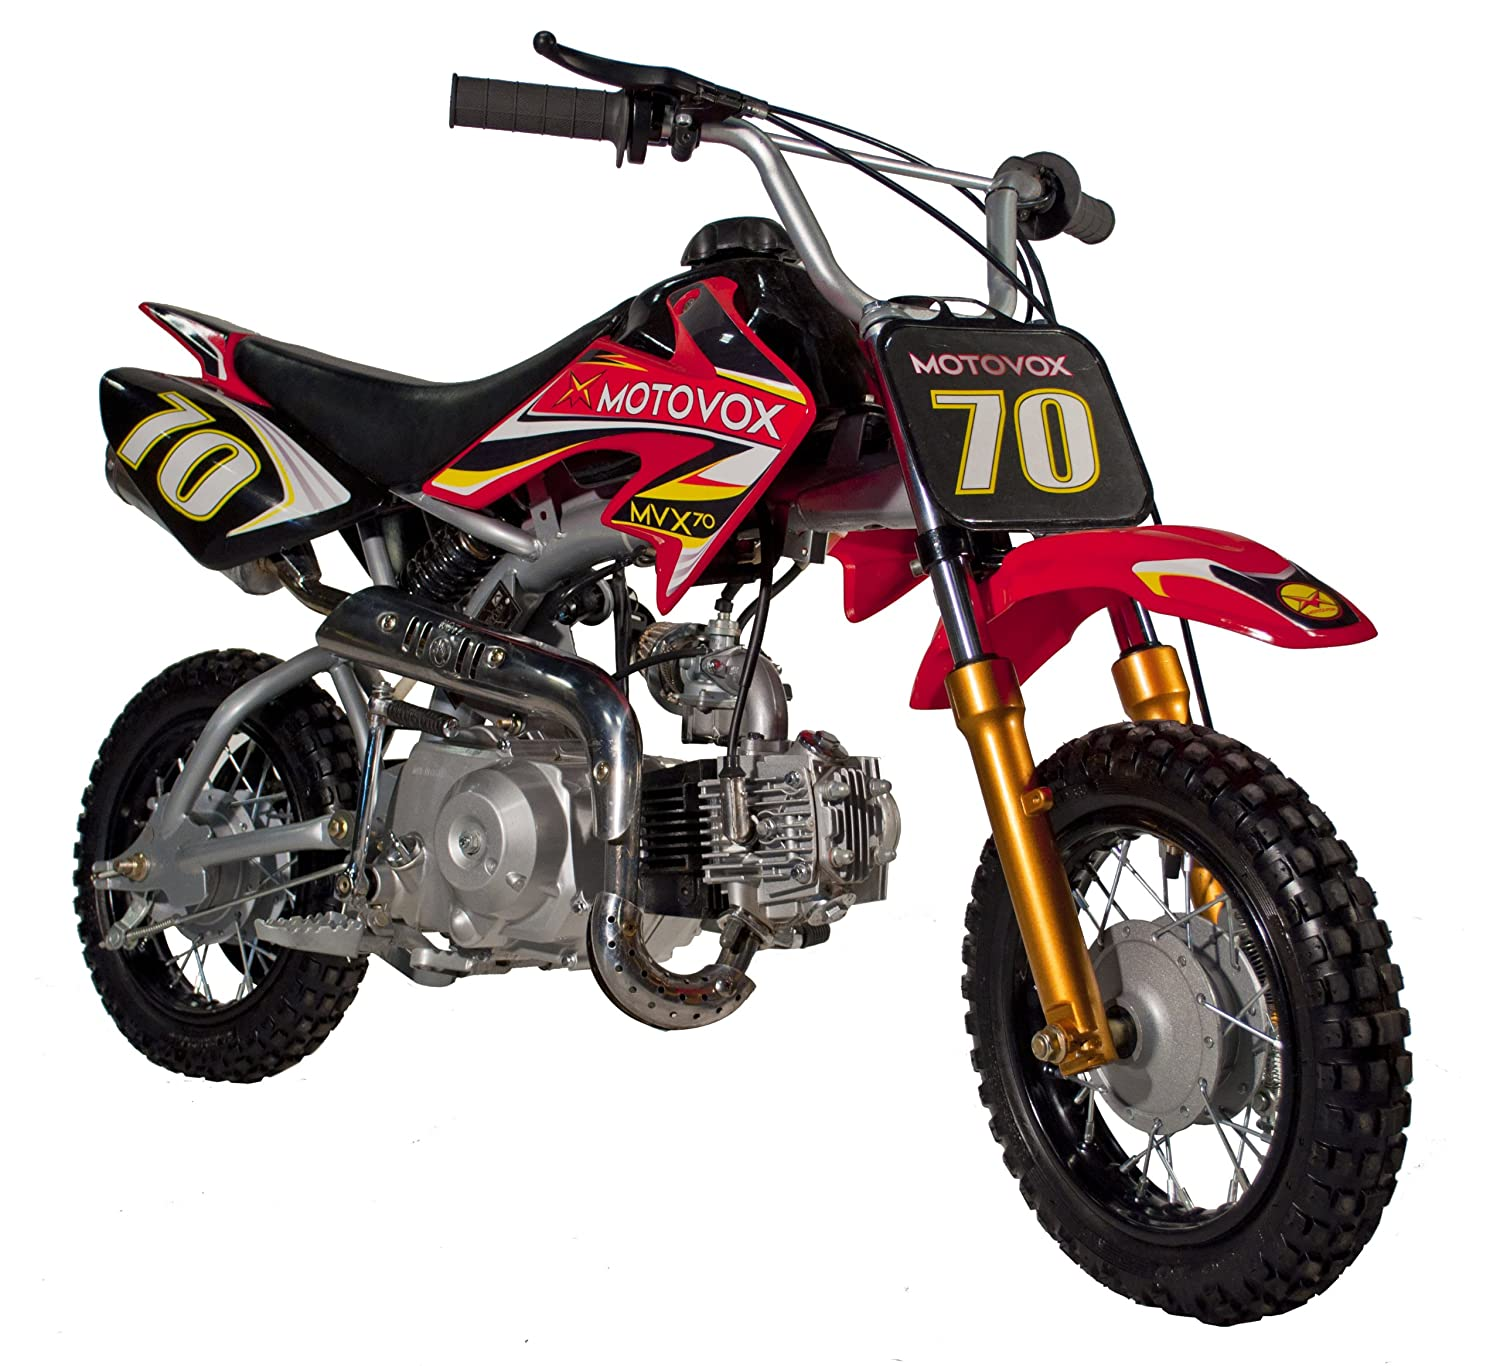 Rugged Dirt Bikes & Tough Helmets With Great Deals